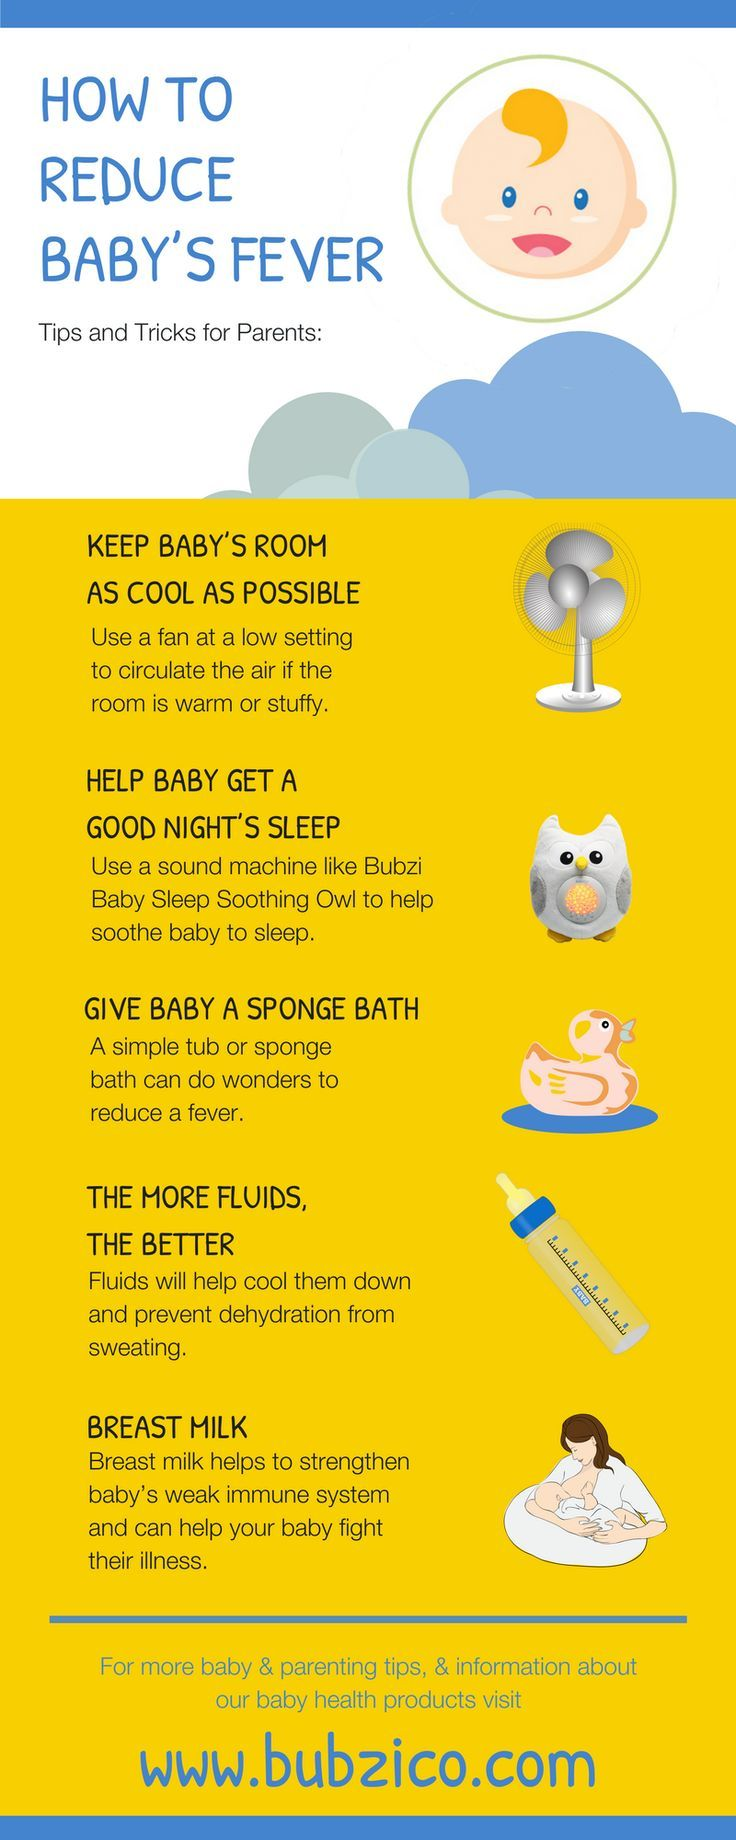 5 Natural Baby Fever Remedies For Your Little One Baby Fever Medicine Baby Fever Reducer Baby Fever Remedies